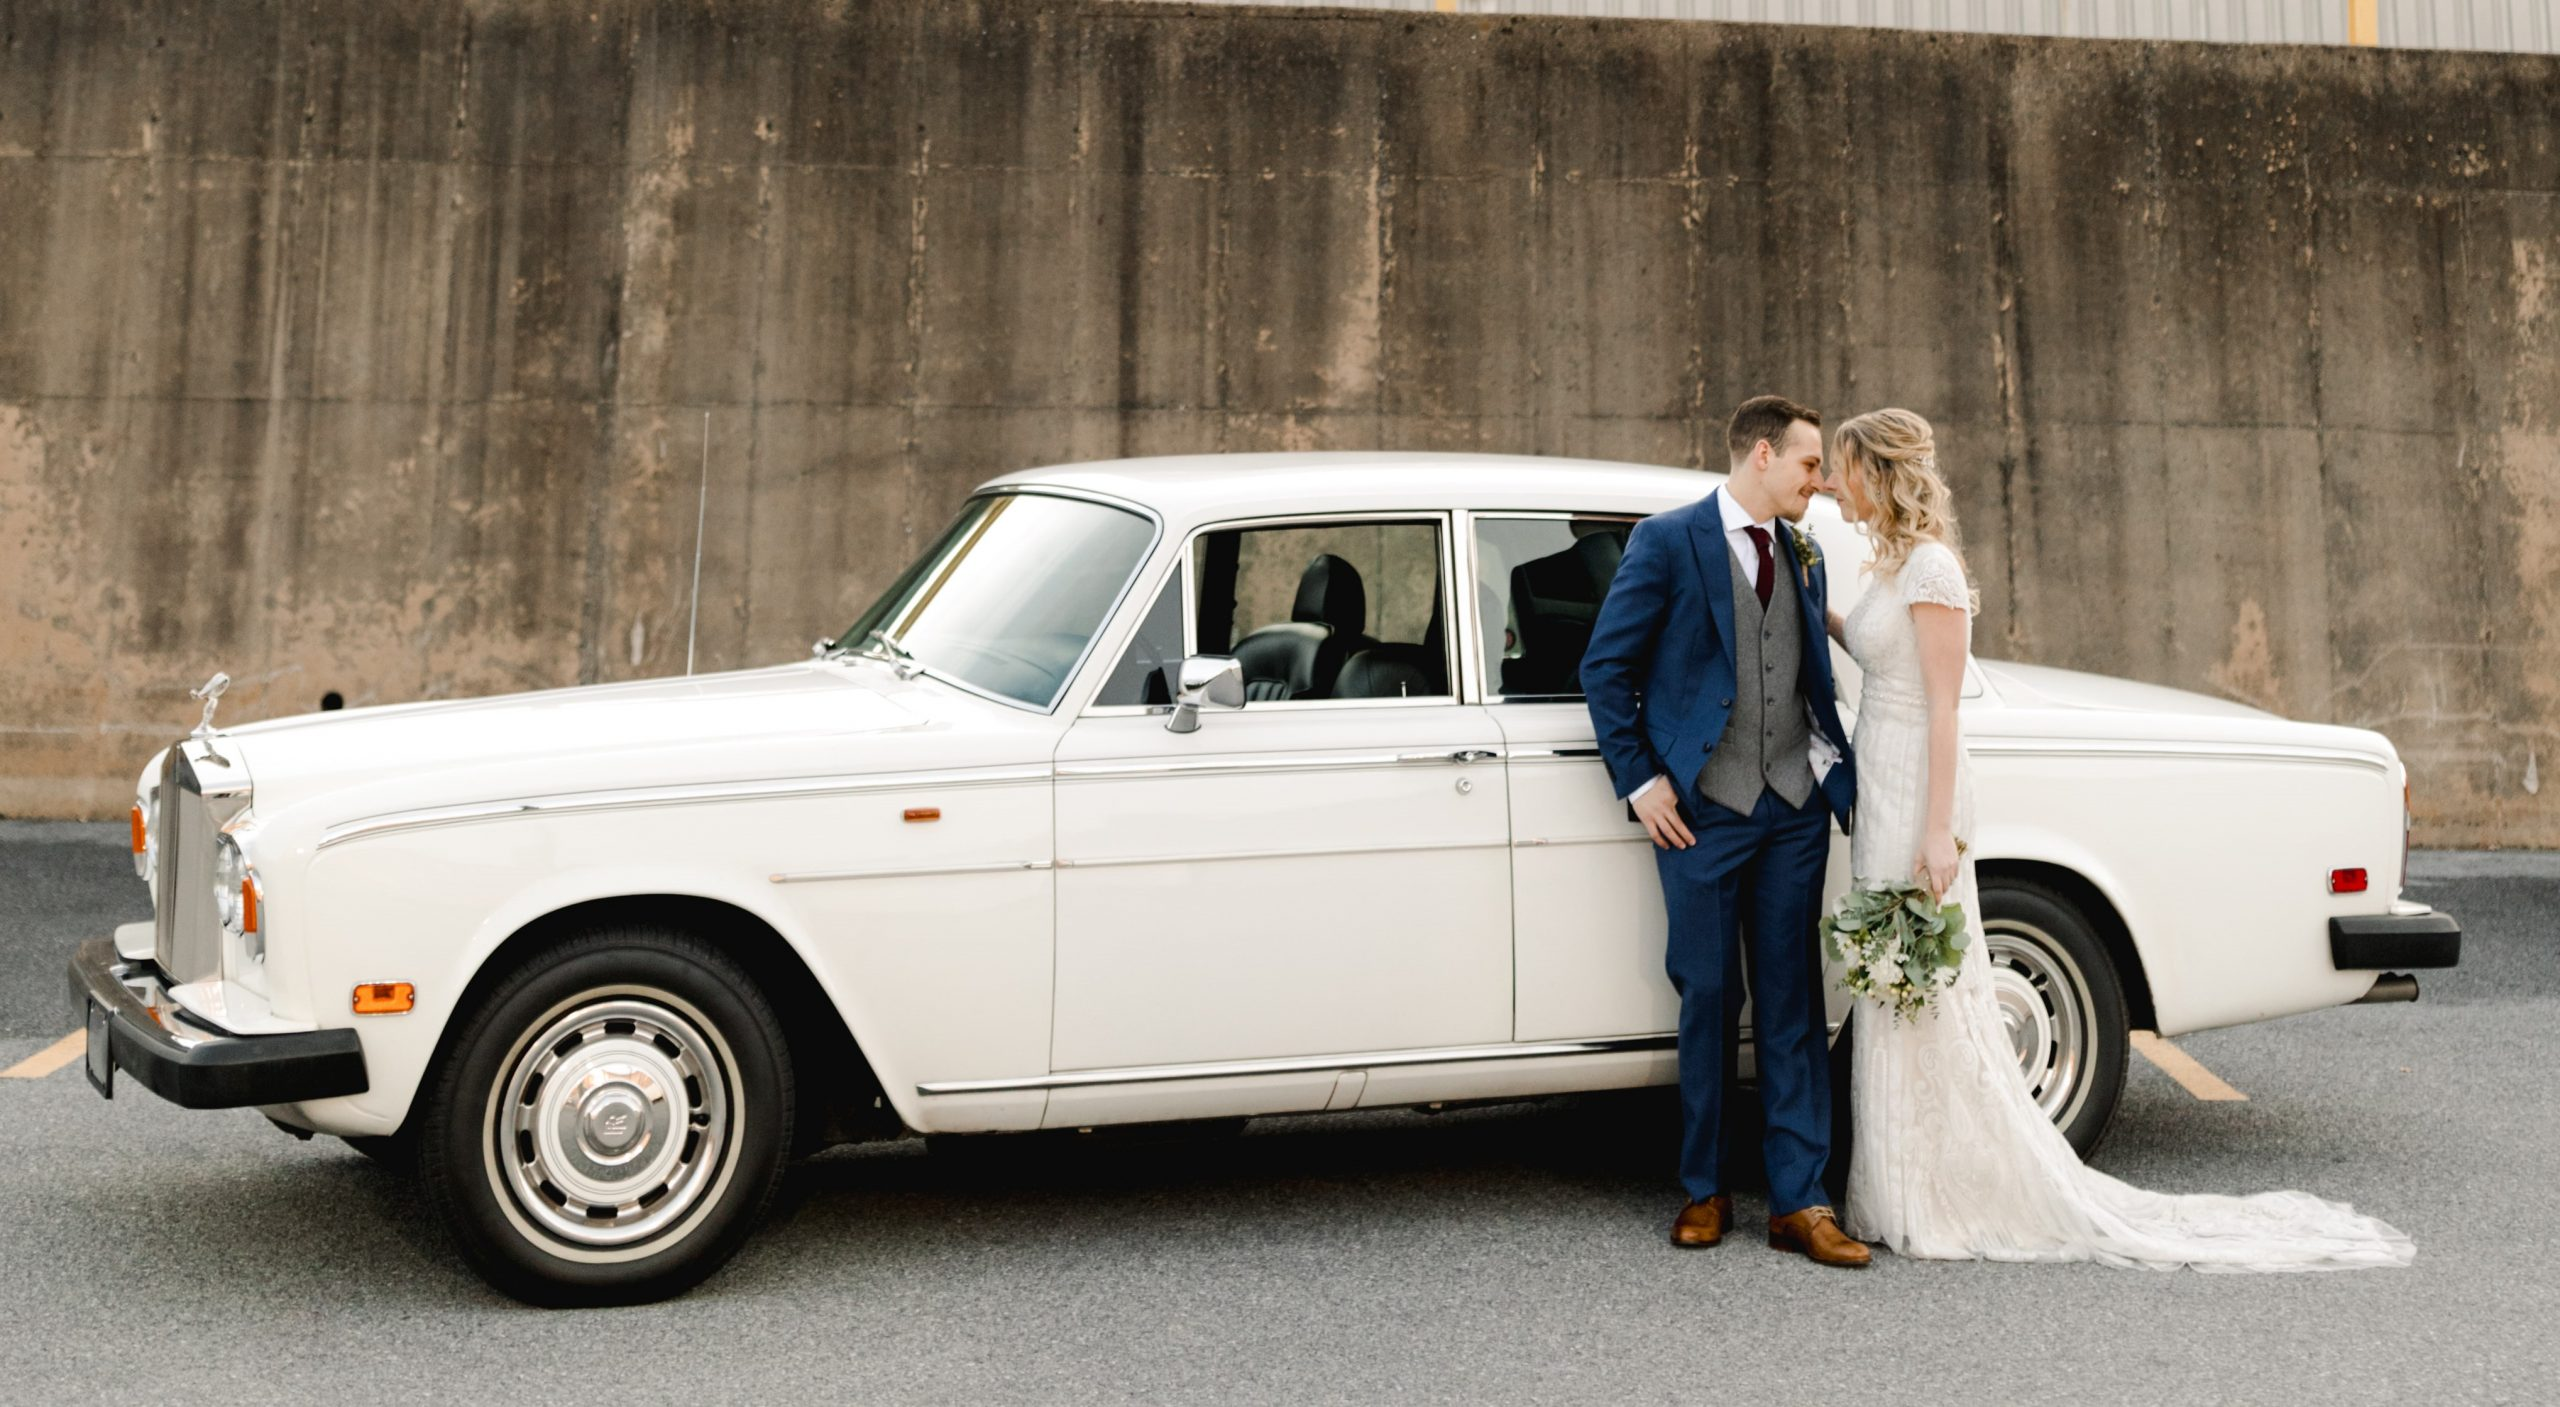 A bride and groom standing in front of a white classic car